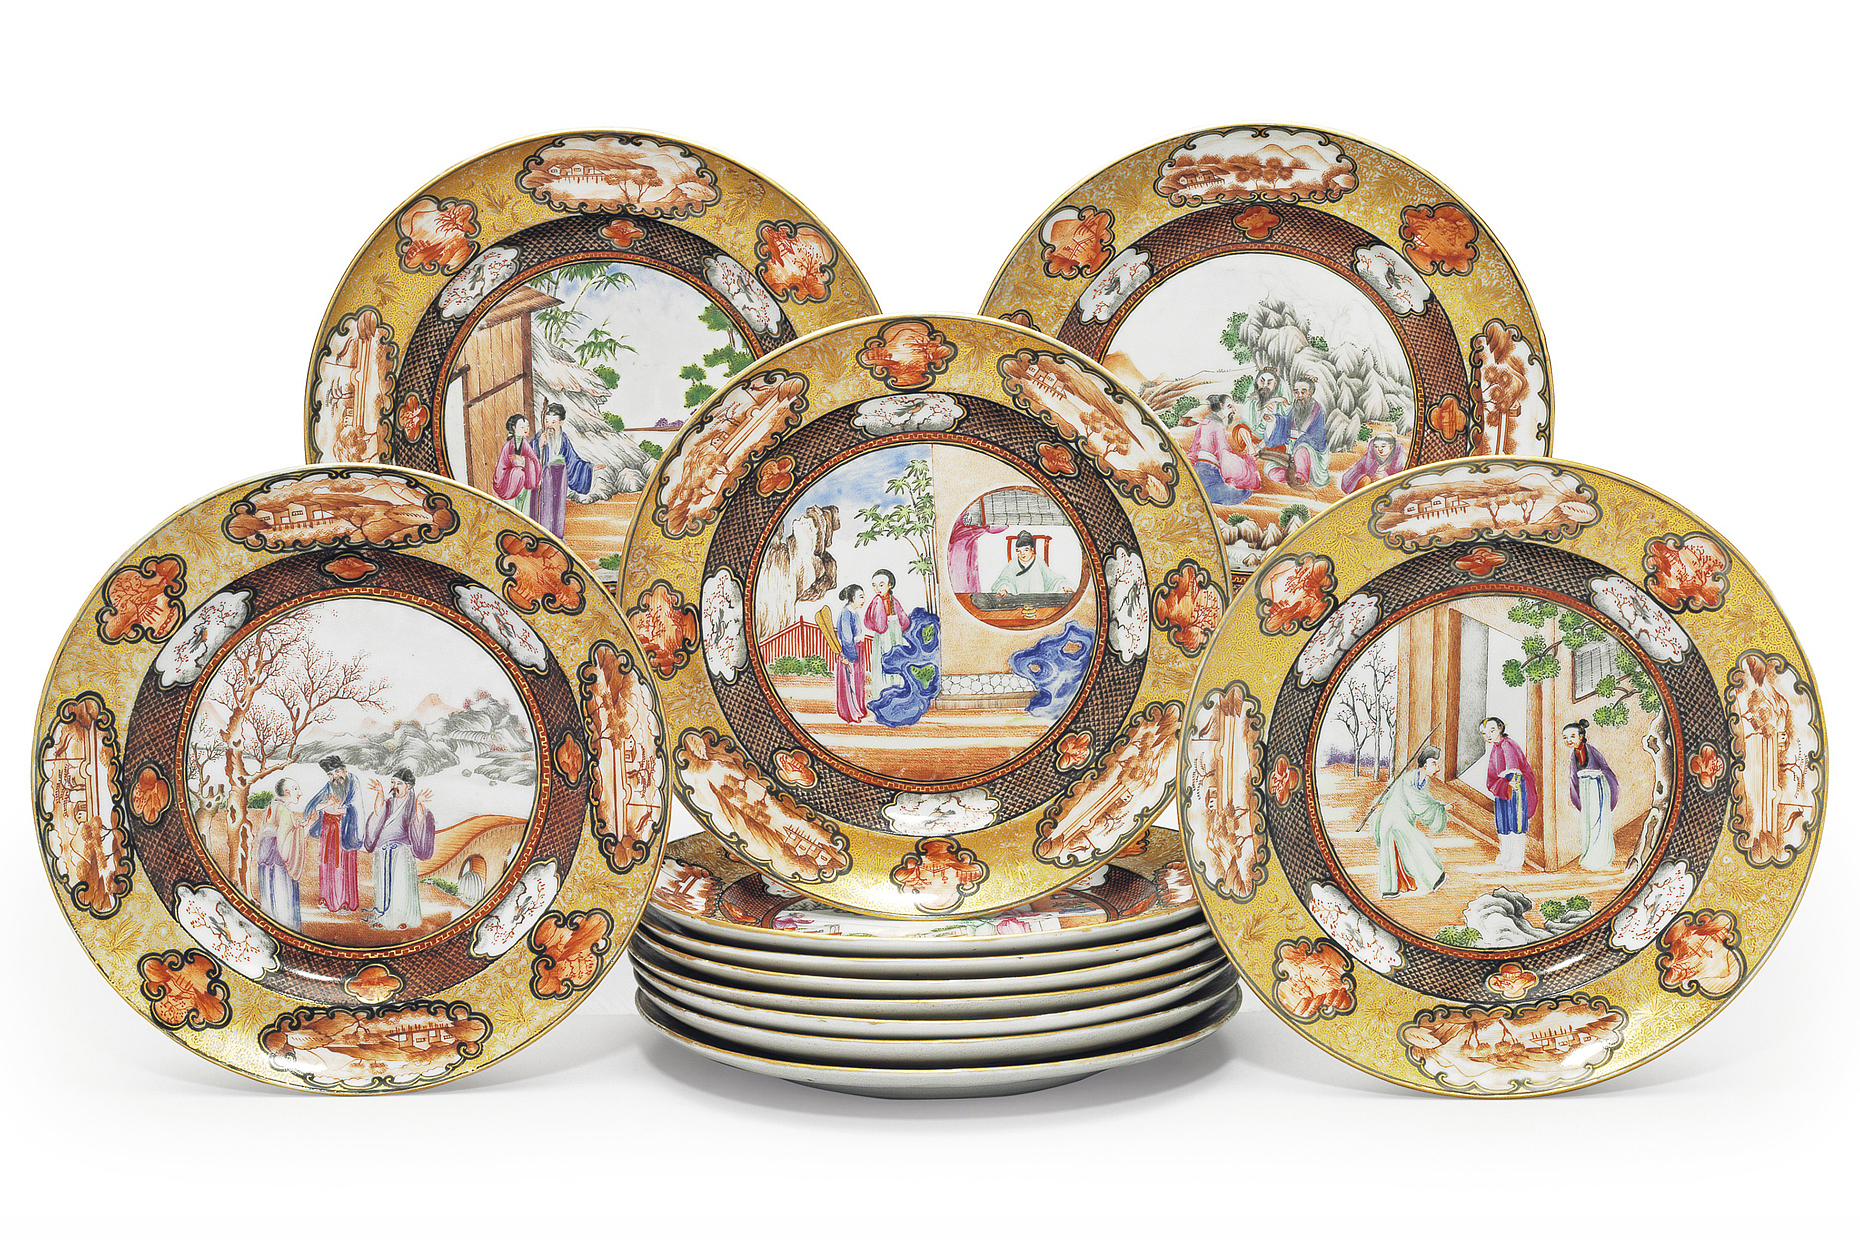 A collection of Chinese decorated porcelain plates